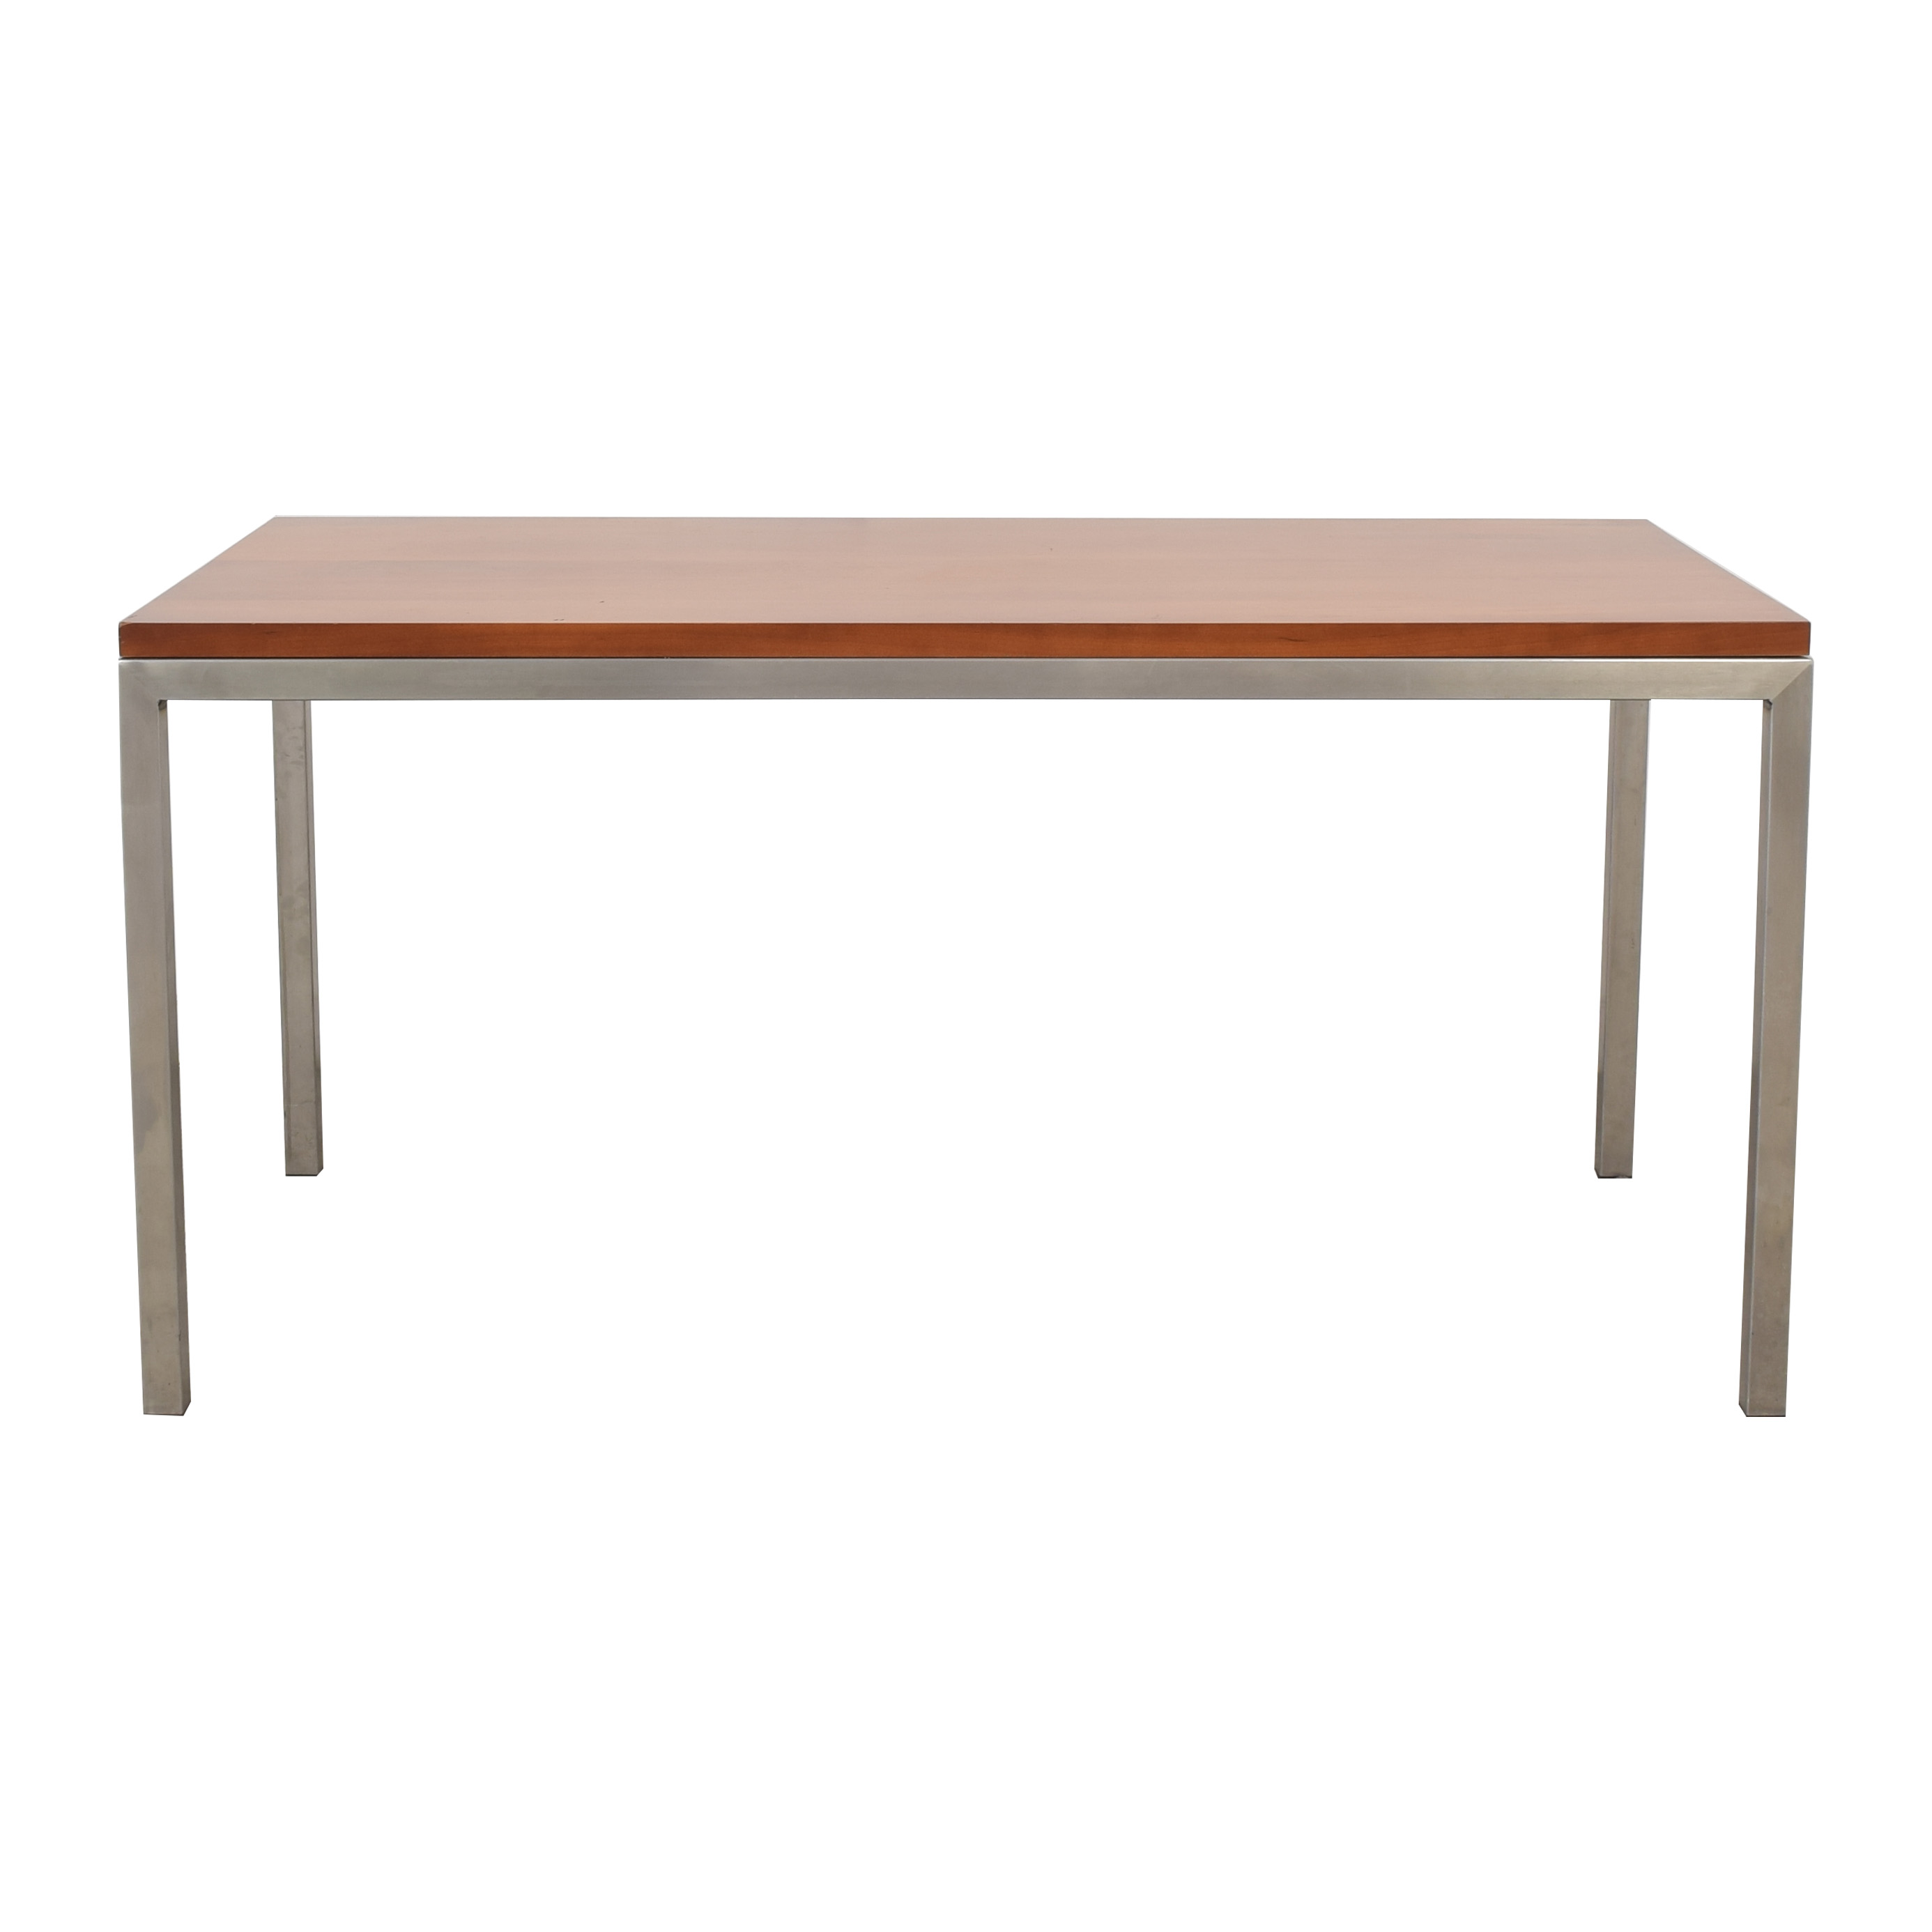 Room & Board Rand Dining Table sale